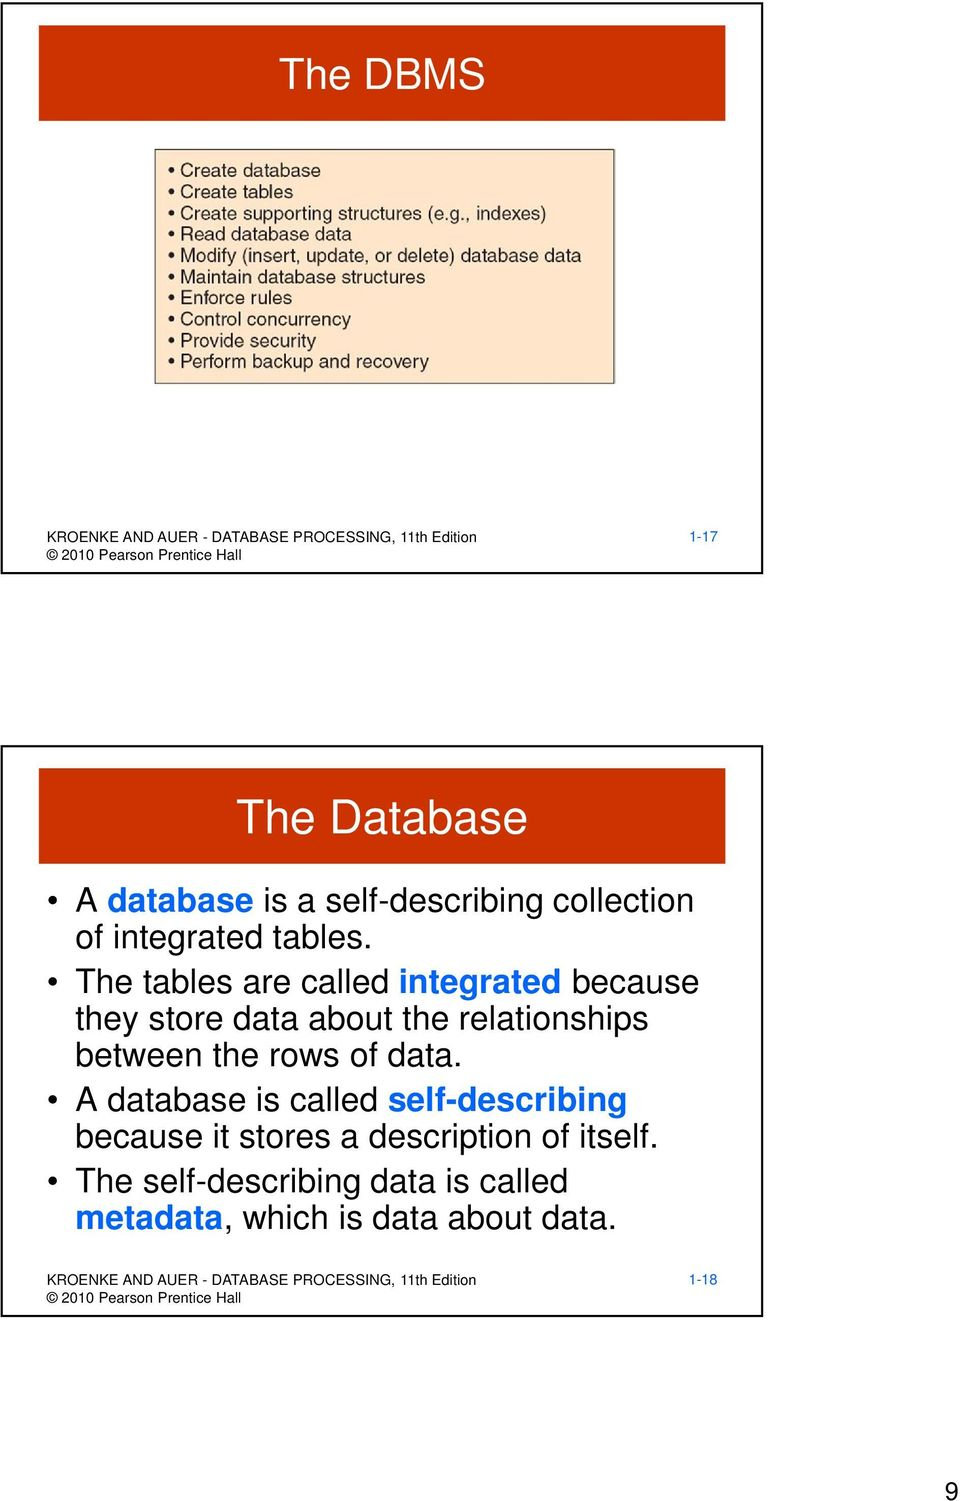 The tables are called integrated because they store data about the relationships between